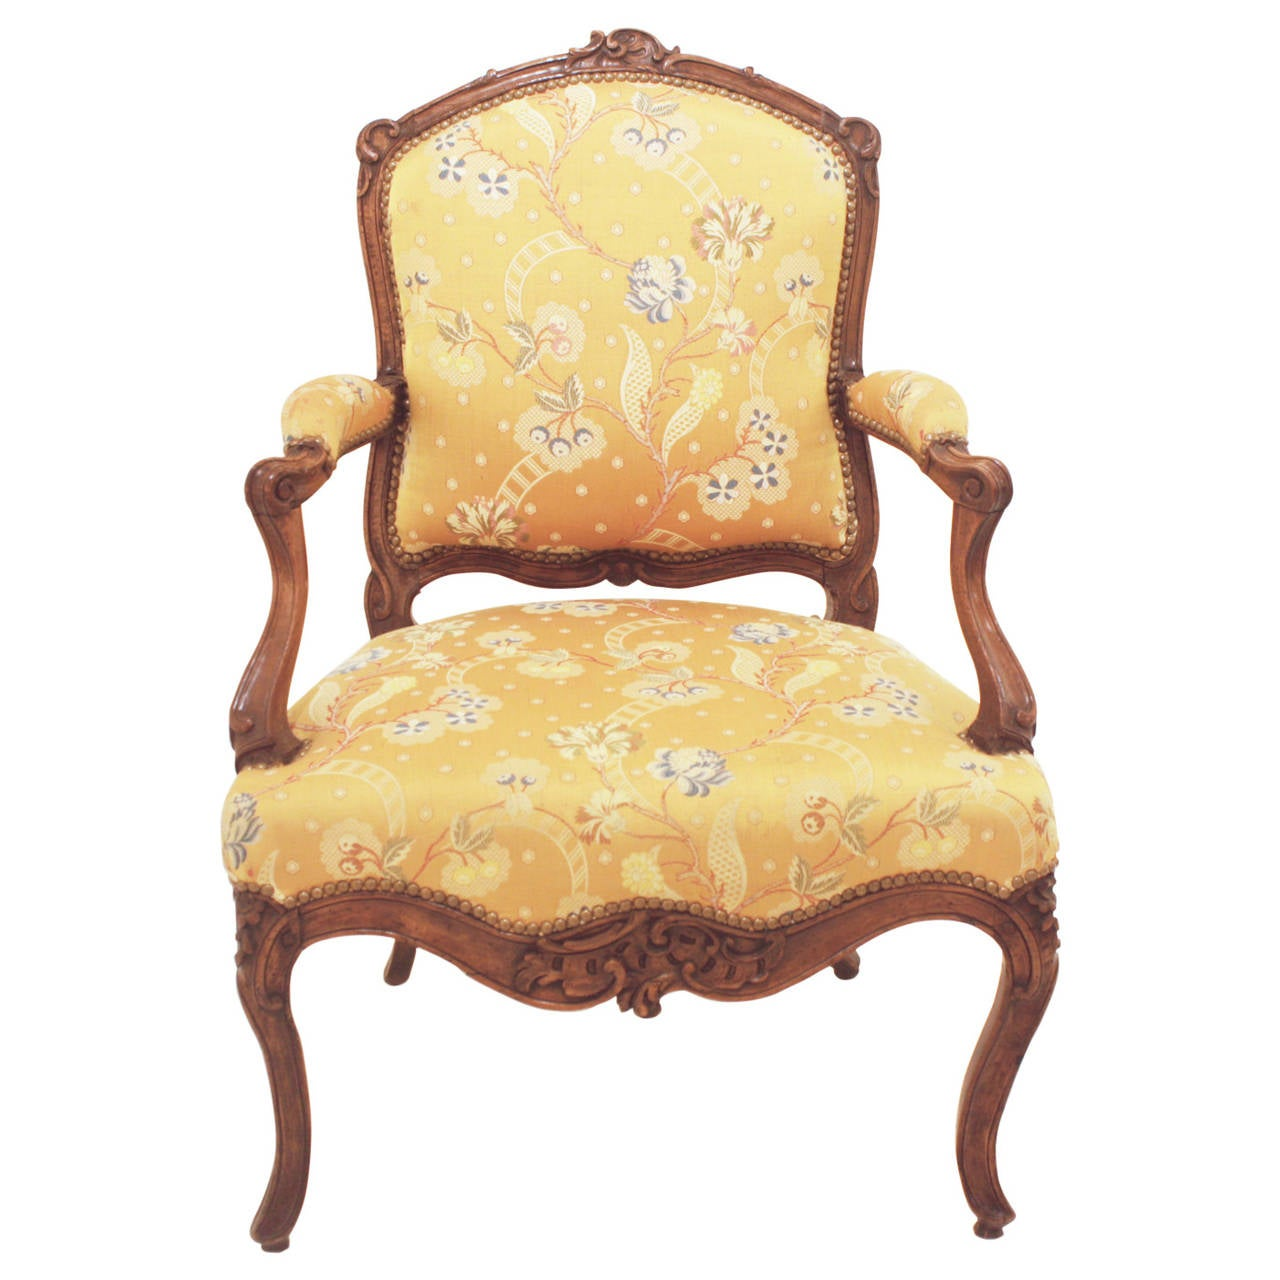 Fauteuils Style Louis Xv Louis Xv Period Walnut And Upholstered Fauteuil